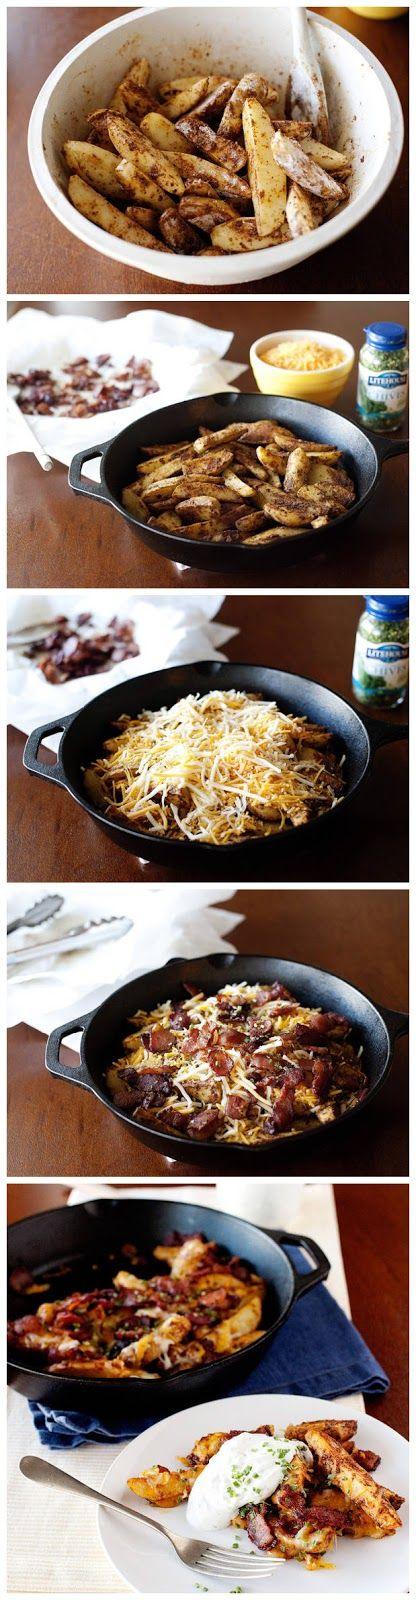 Baked Chili Cheese Fries with Bacon and Ranch